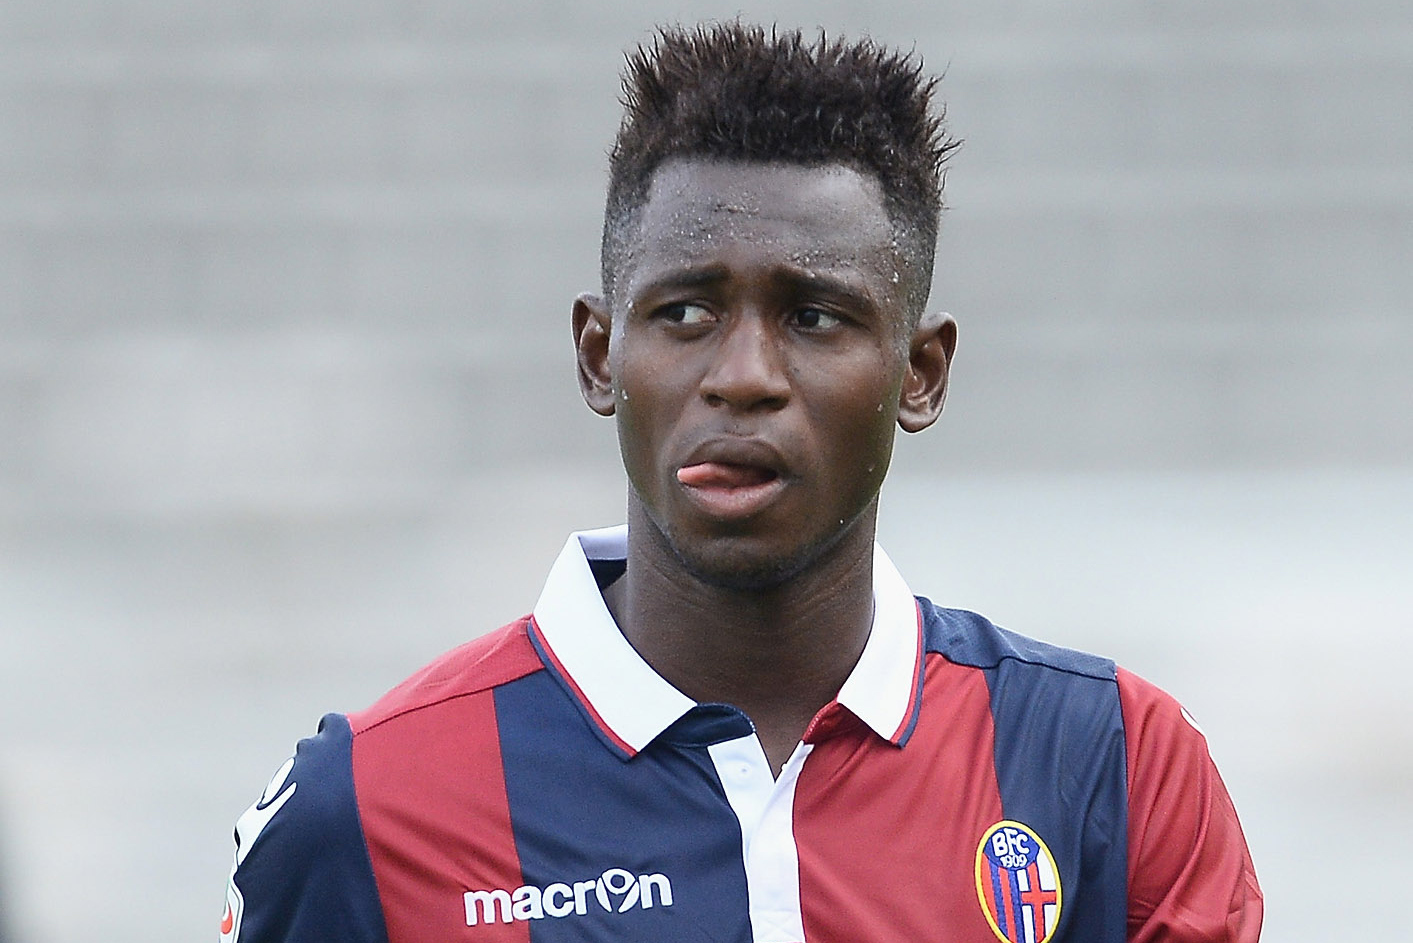 BOLOGNA, ITALY - SEPTEMBER 27: Amadou Diawara # 21 of Bologna FC looks dejected at the end of the Serie A match between Bologna FC and Udinese Calcio at Stadio Renato Dall'Ara on September 27, 2015 in Bologna, Italy. (Photo by Mario Carlini / Iguana Press/Getty Images)